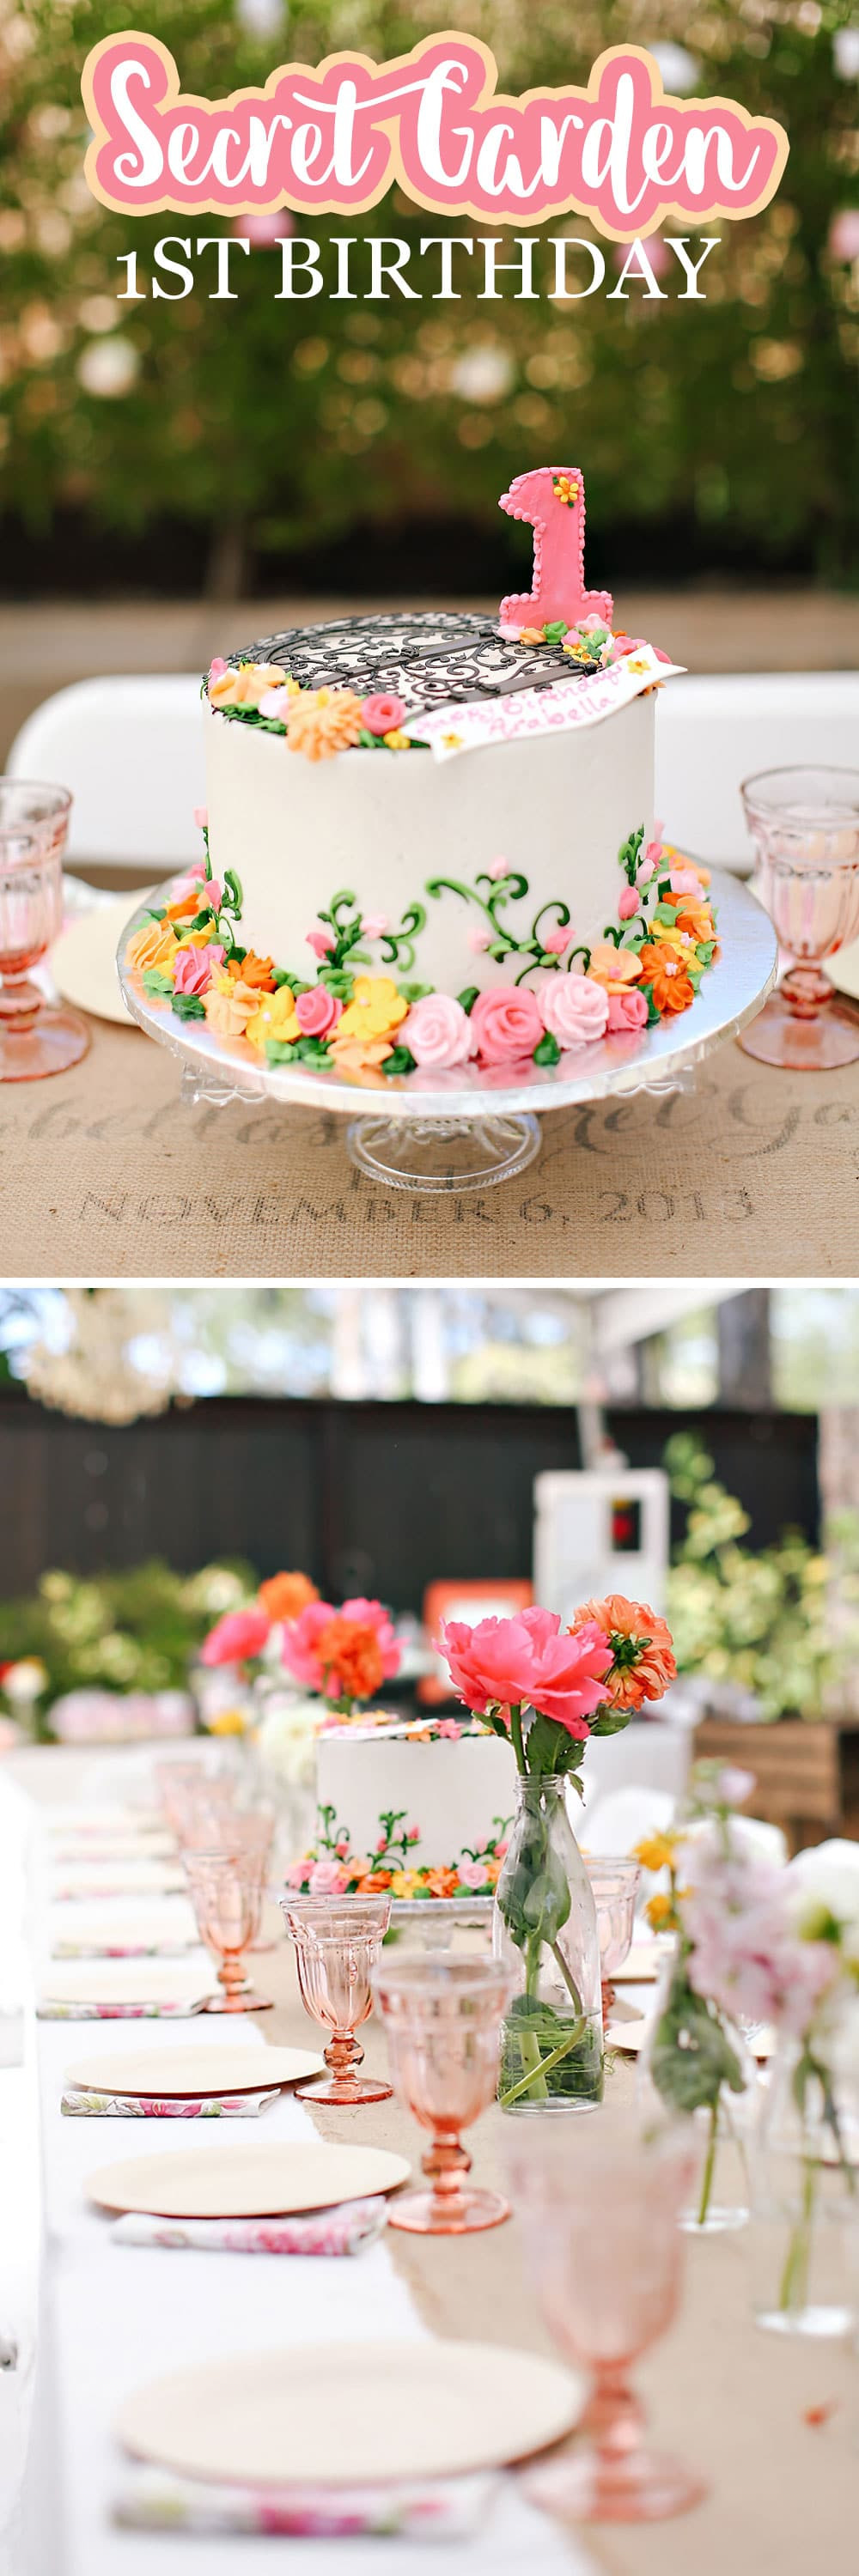 Best ideas about Garden Birthday Party . Save or Pin A Secret Garden Themed 1st Birthday Now.